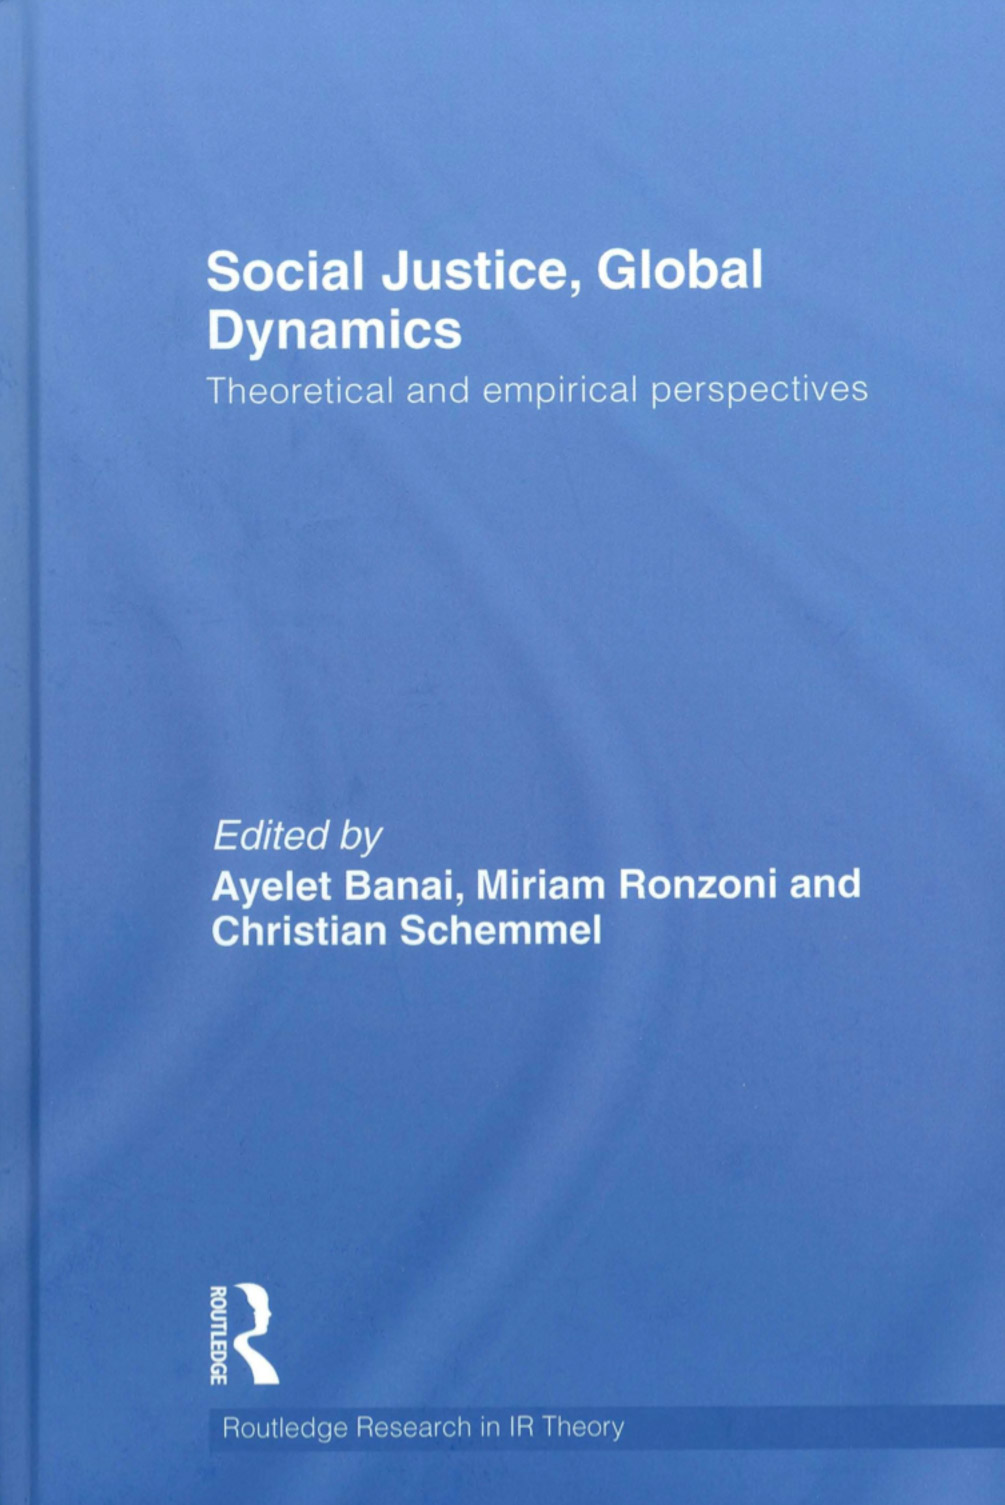 Social Justice, Global Dynamics: Theoretical and Empirical Perspectives